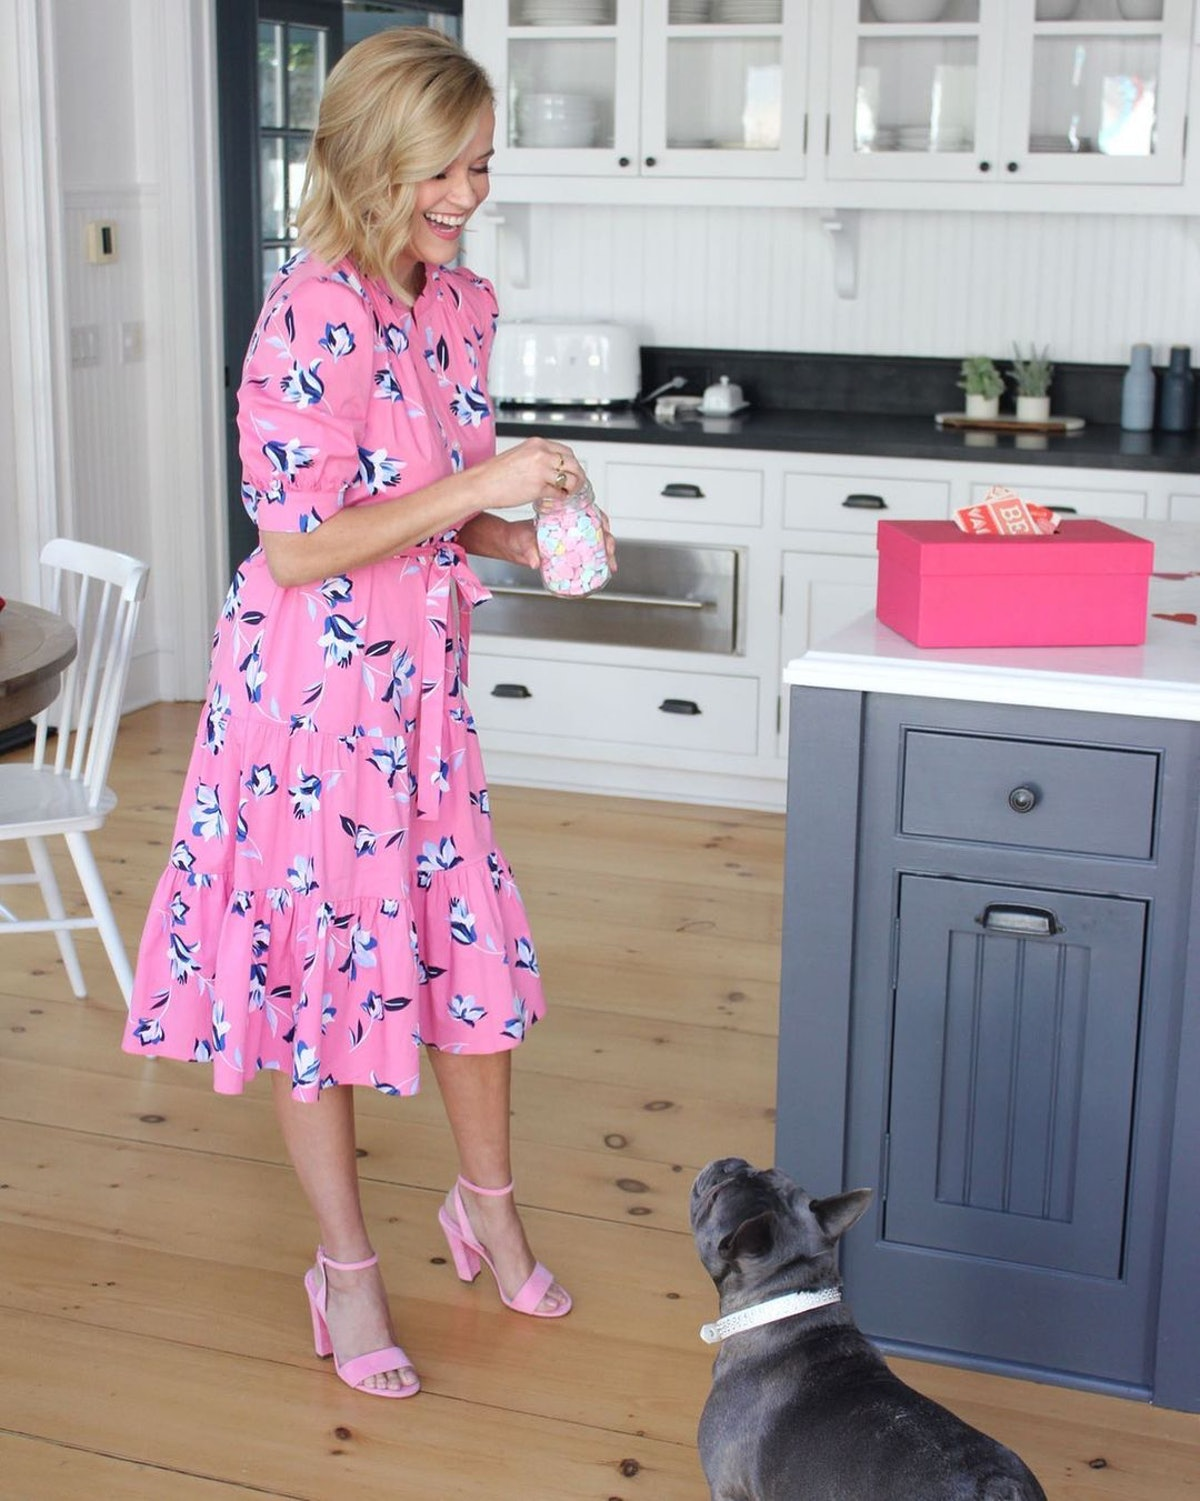 celebrity kitchens Reese Witherspoon